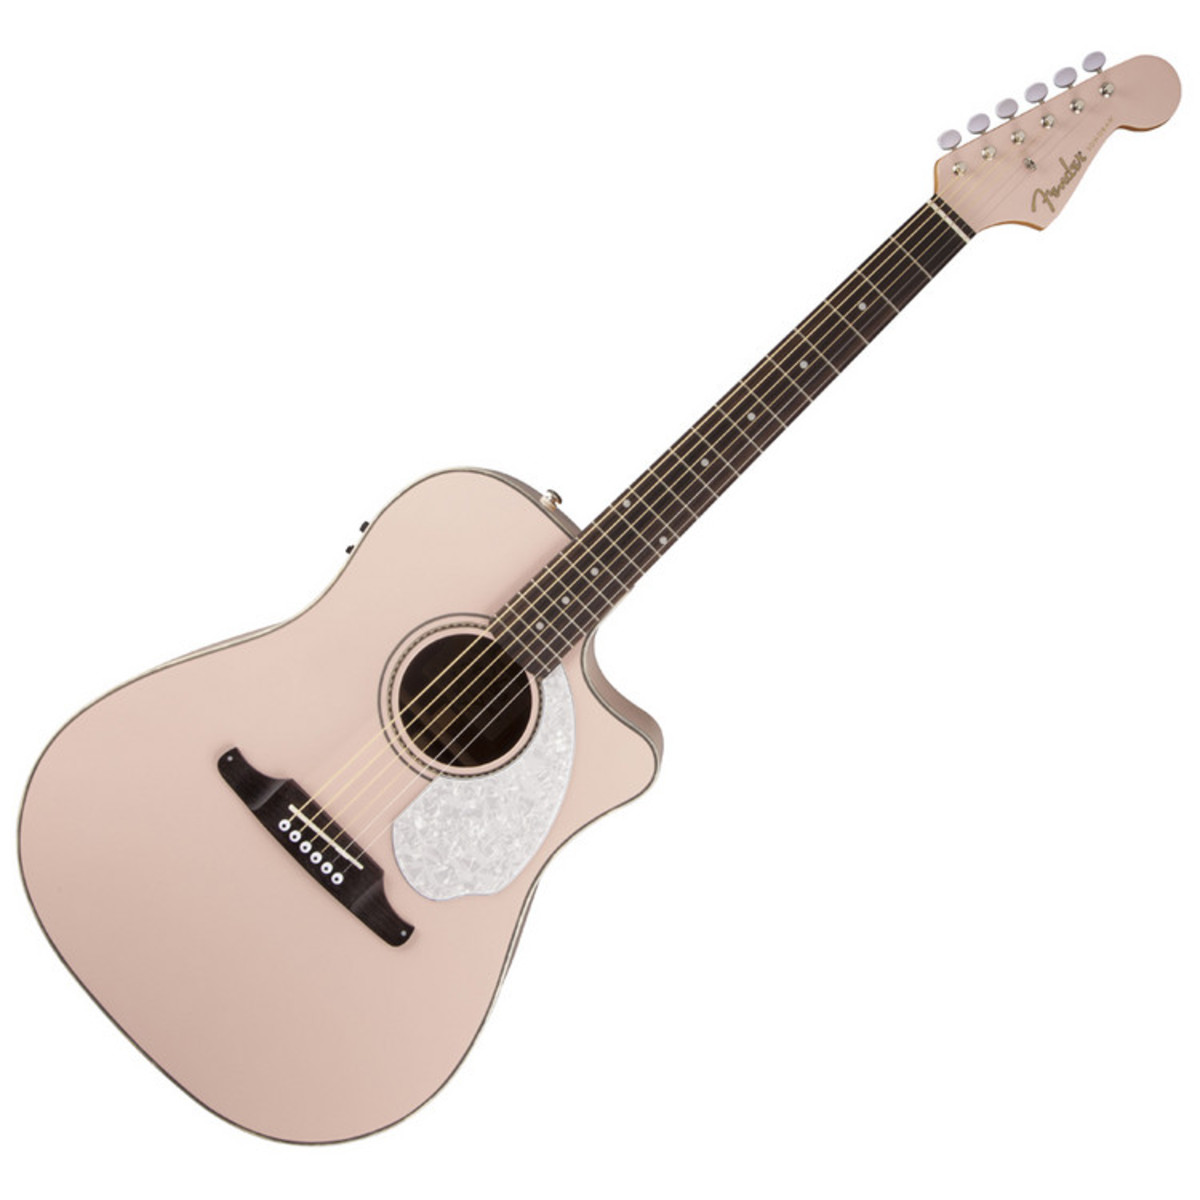 fender sonoran sce guitare electro acoustique rw rose. Black Bedroom Furniture Sets. Home Design Ideas